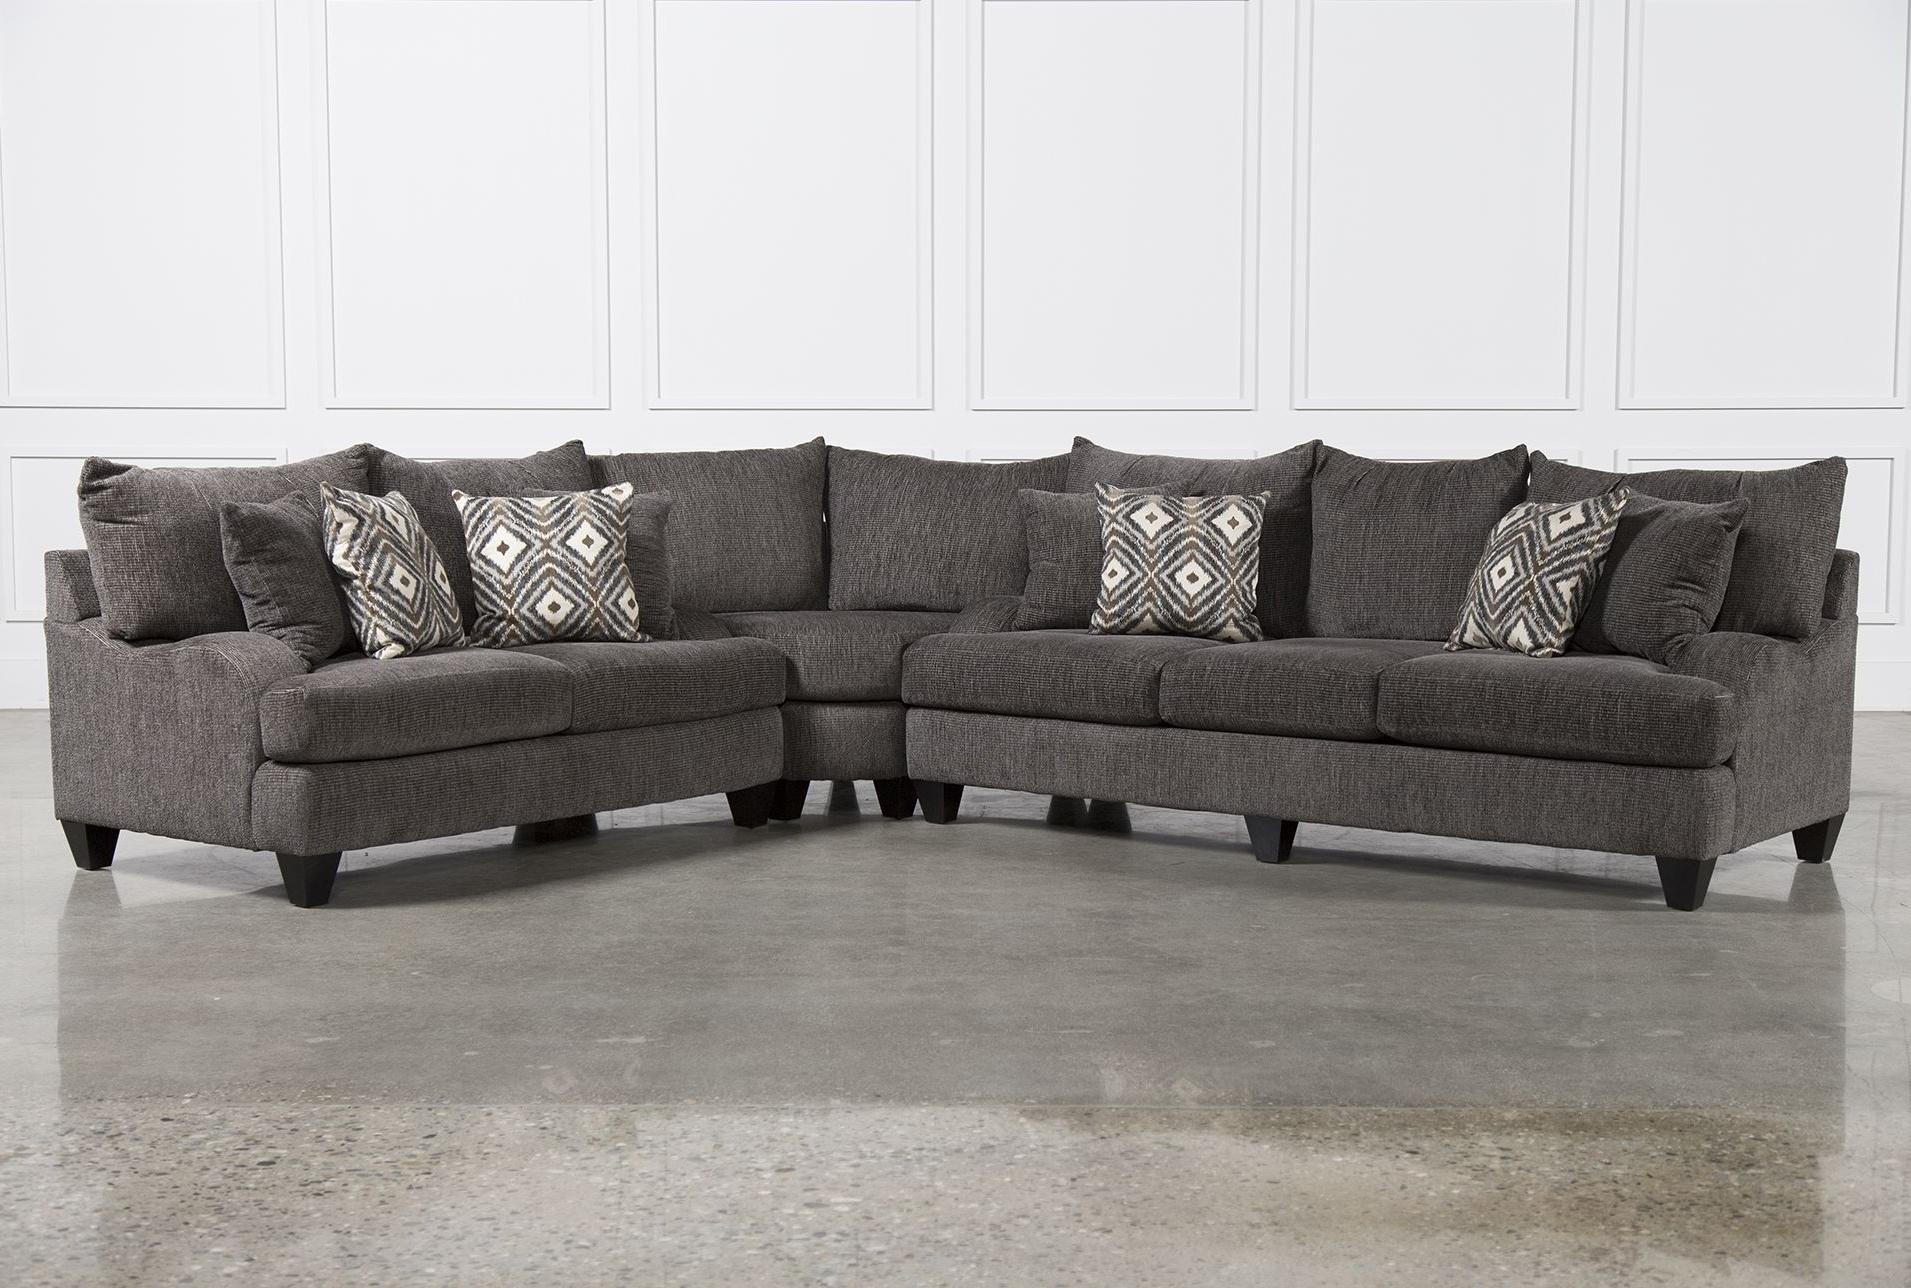 Well Known Long Sectional Sofas Plus Leather L Sofa Together With Designs Or In Grey Couches With Chaise (View 14 of 15)